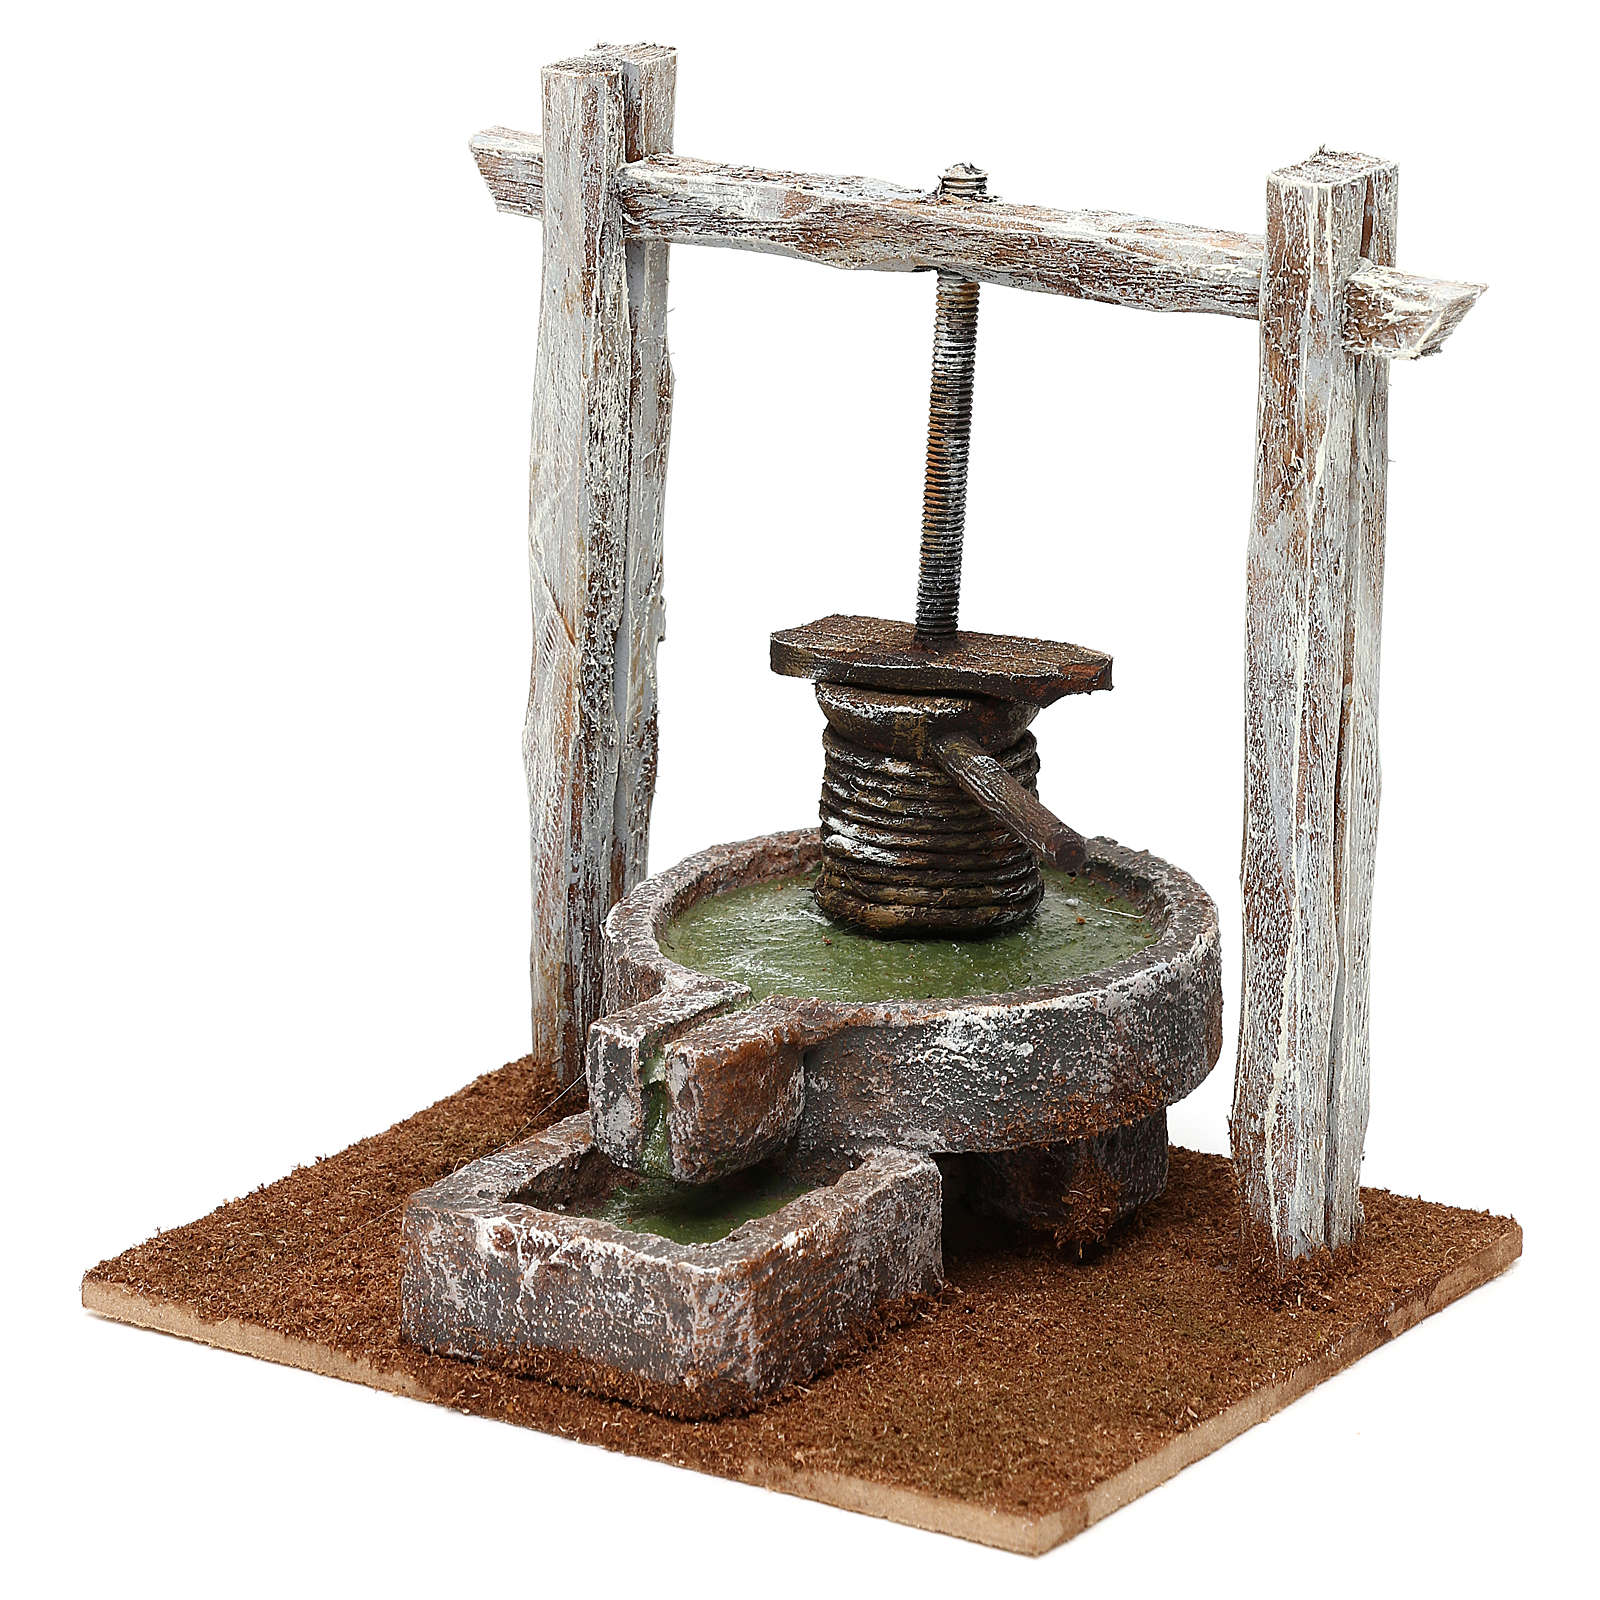 Winepress in wood and resin for 10 cm Nativity scene, 15x15x10 cm 4